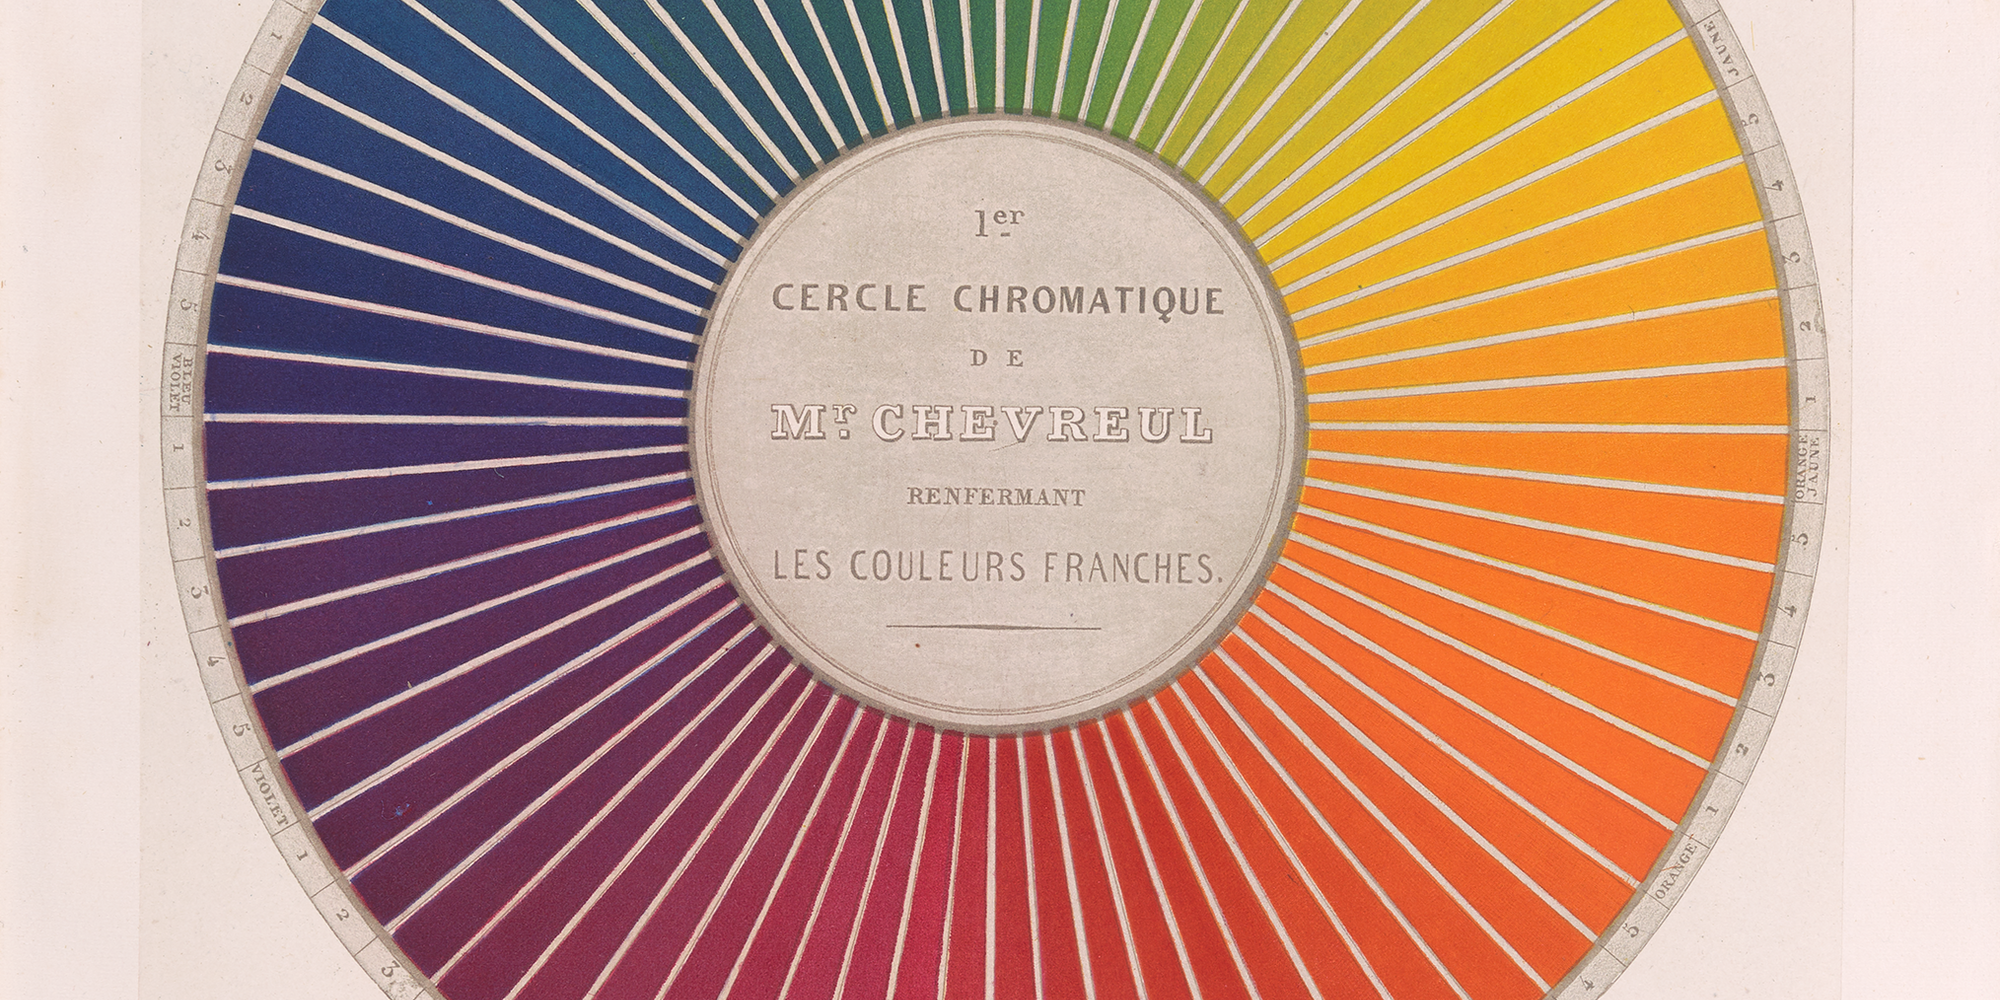 A page from Des couleurs et de leurs applications aux arts industriels à l'aide des cercles chromatiques (Colors and Their Application to Industrial Arts Using Chromatic Circles). 1864. Written by Michel Eugène Chevreul. Engraved by René-Henri Digeon